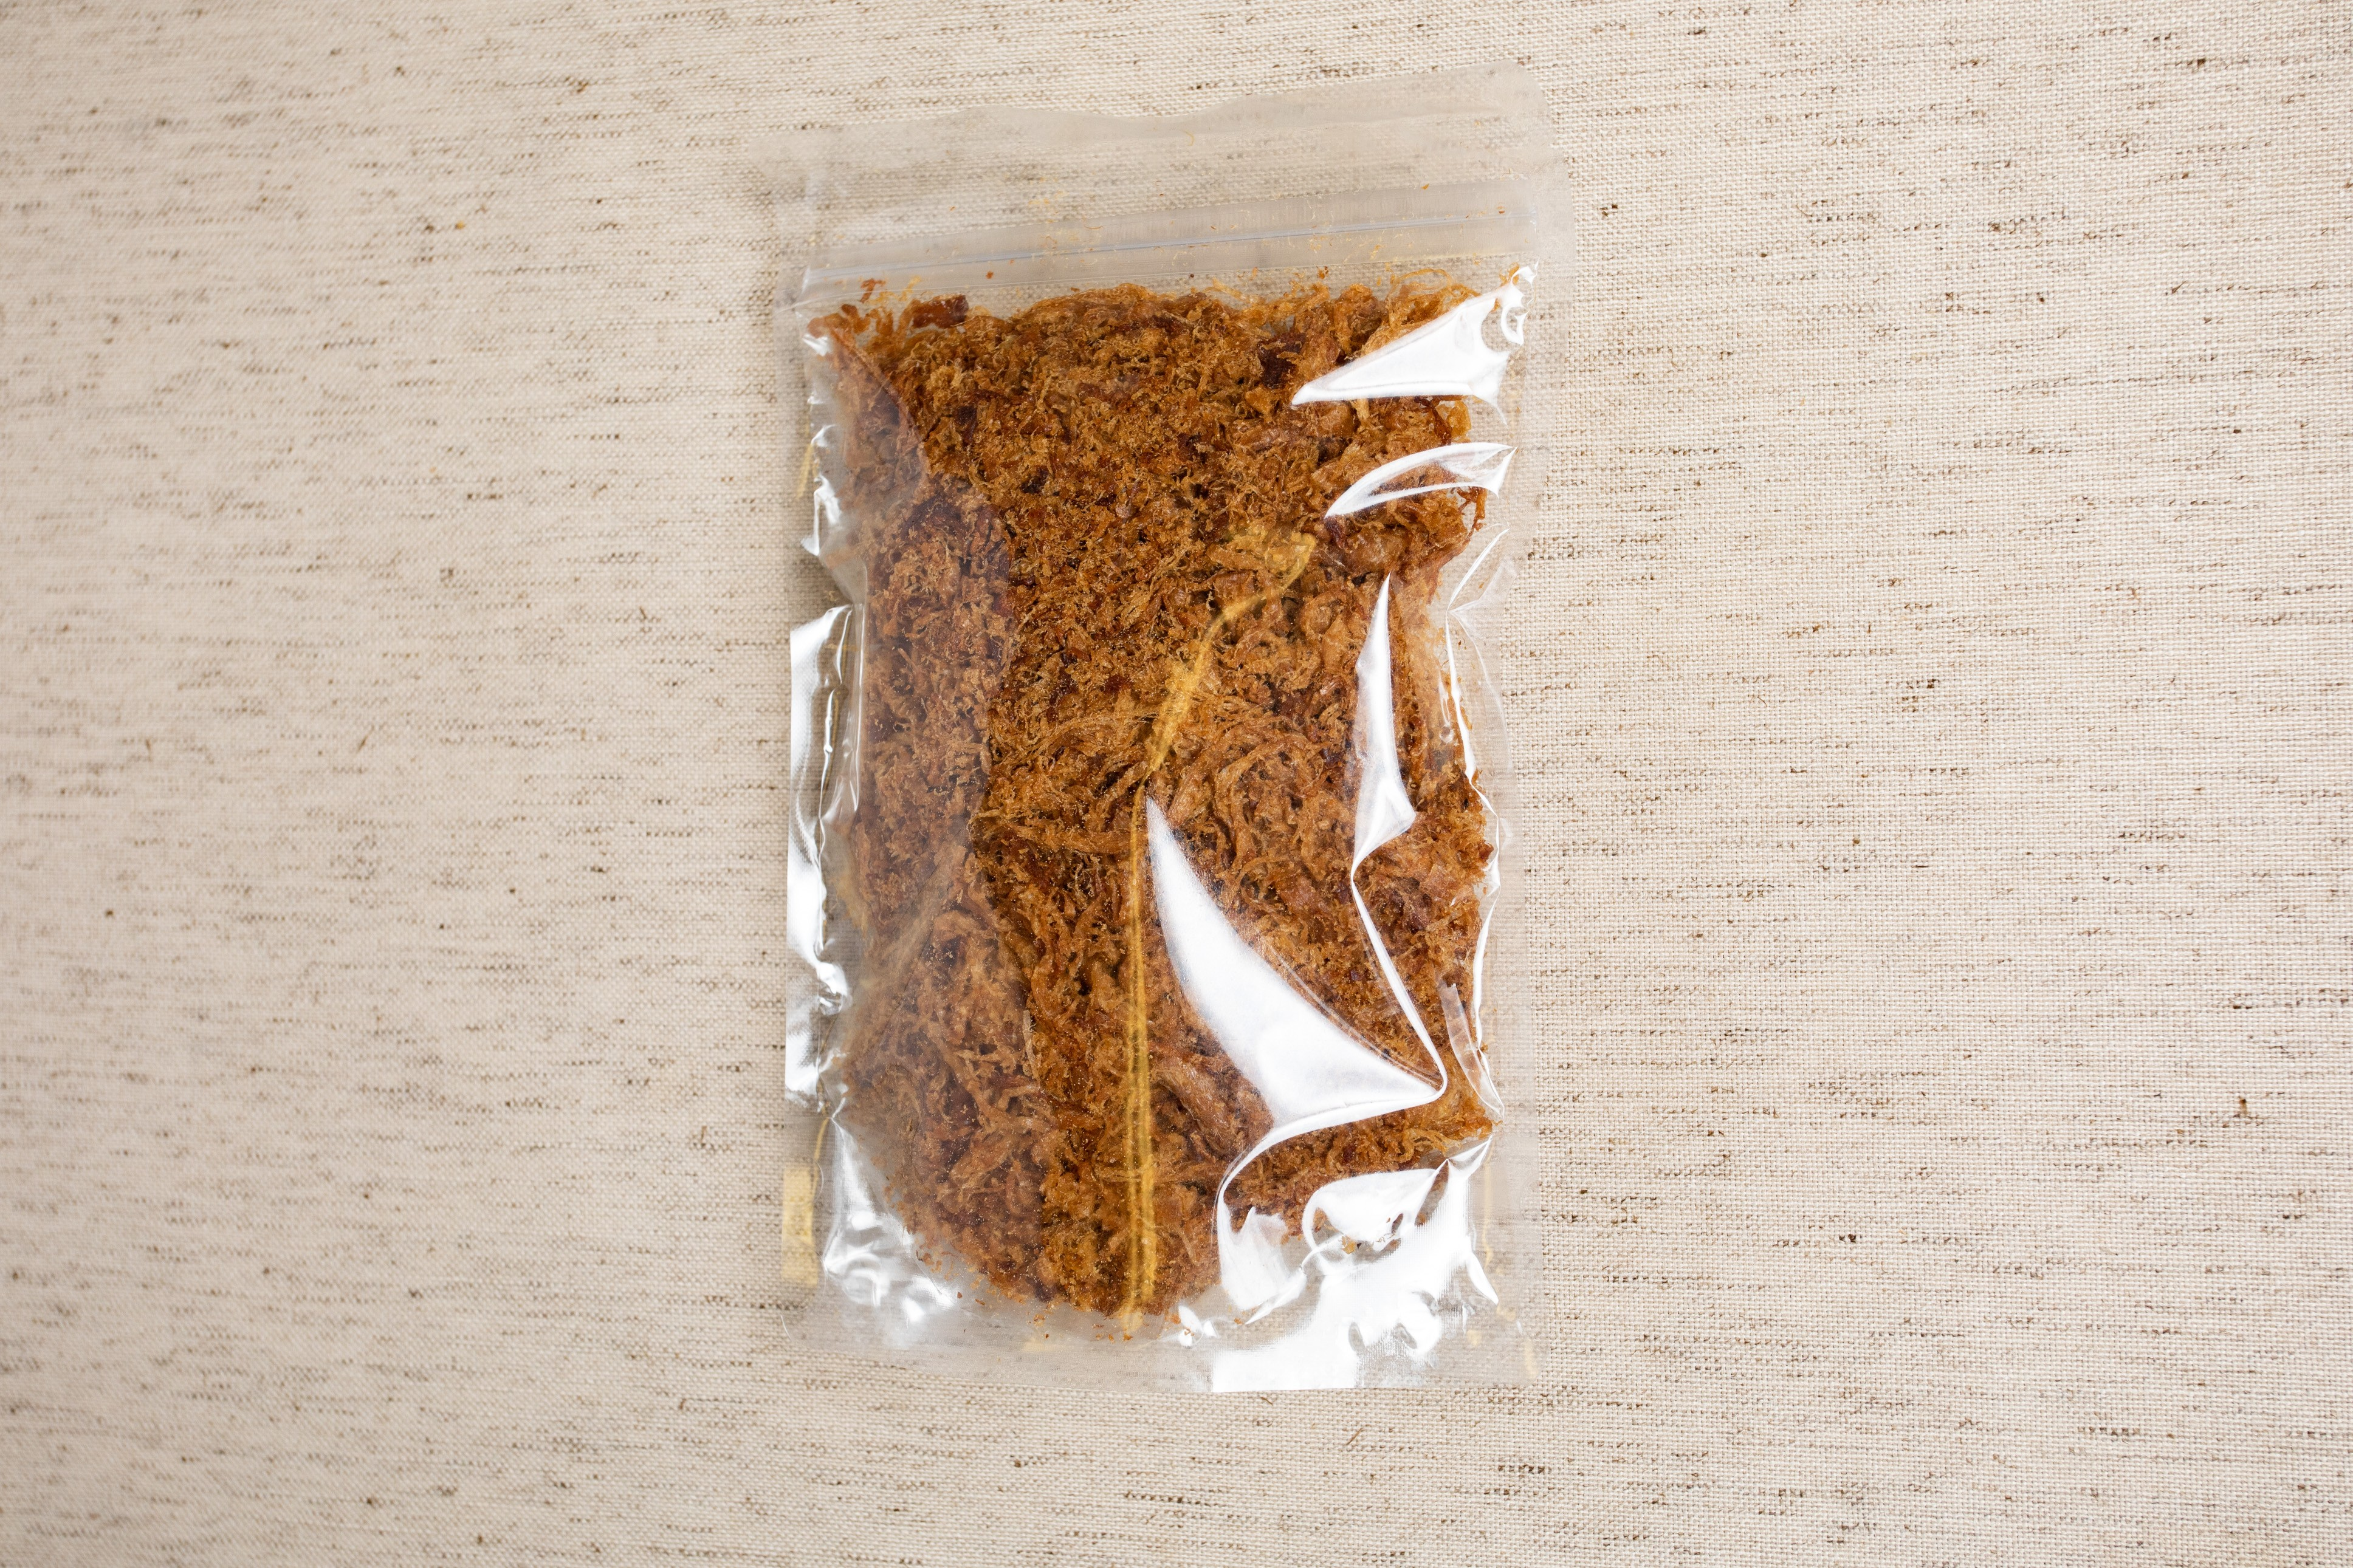 Snacks-Soybean Shred (Smaller Package) 香焙肉絲 / Soy Fiber